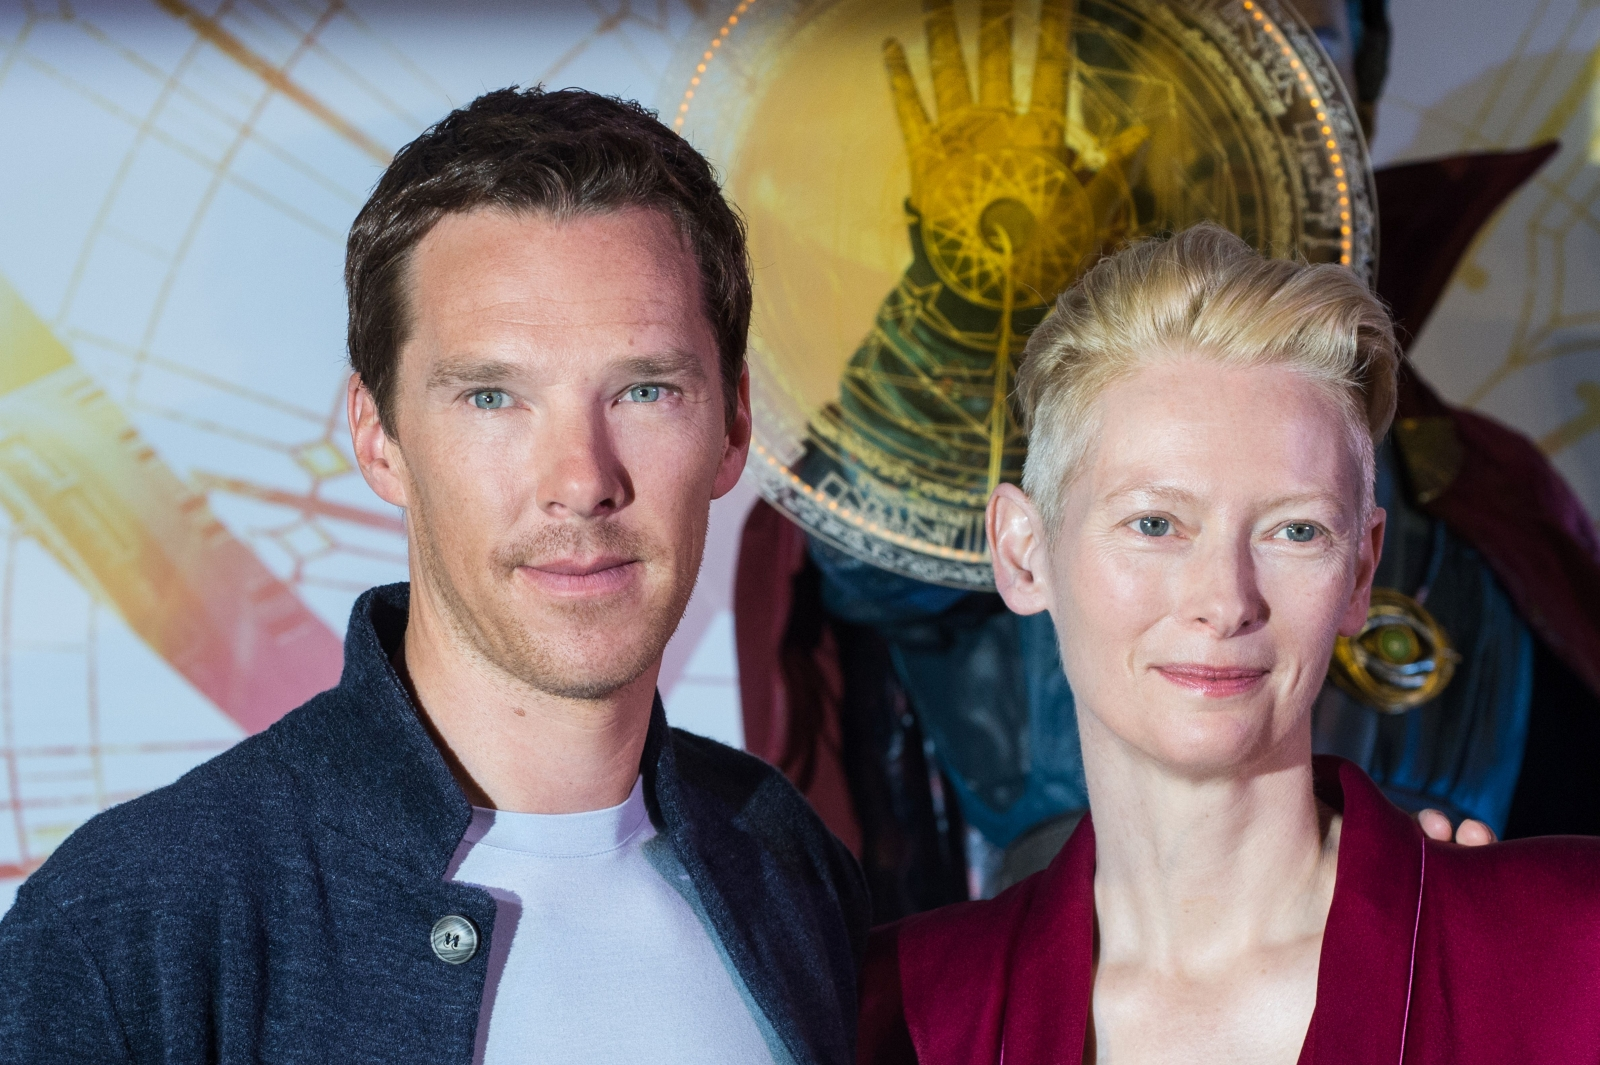 Benedict Cumberbatch and Tilda Swinton